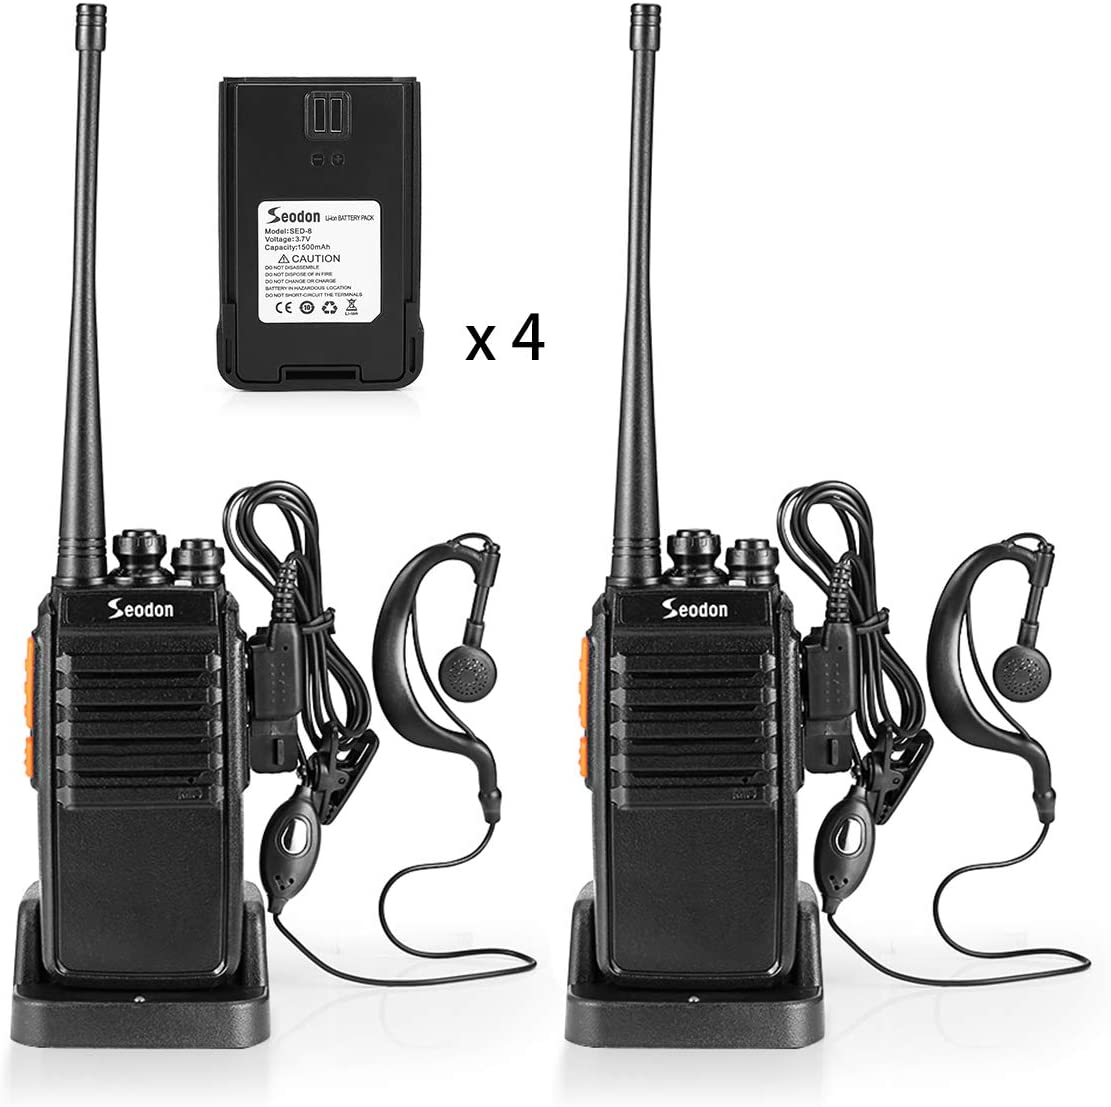 Seodon Walkie Talkies Rechargeable for Adults Long Range with One Extra Battery GMRS/FRS Two Way Radios UHF 400-470Mhz with Earpiece/Headsets(2 Pack)